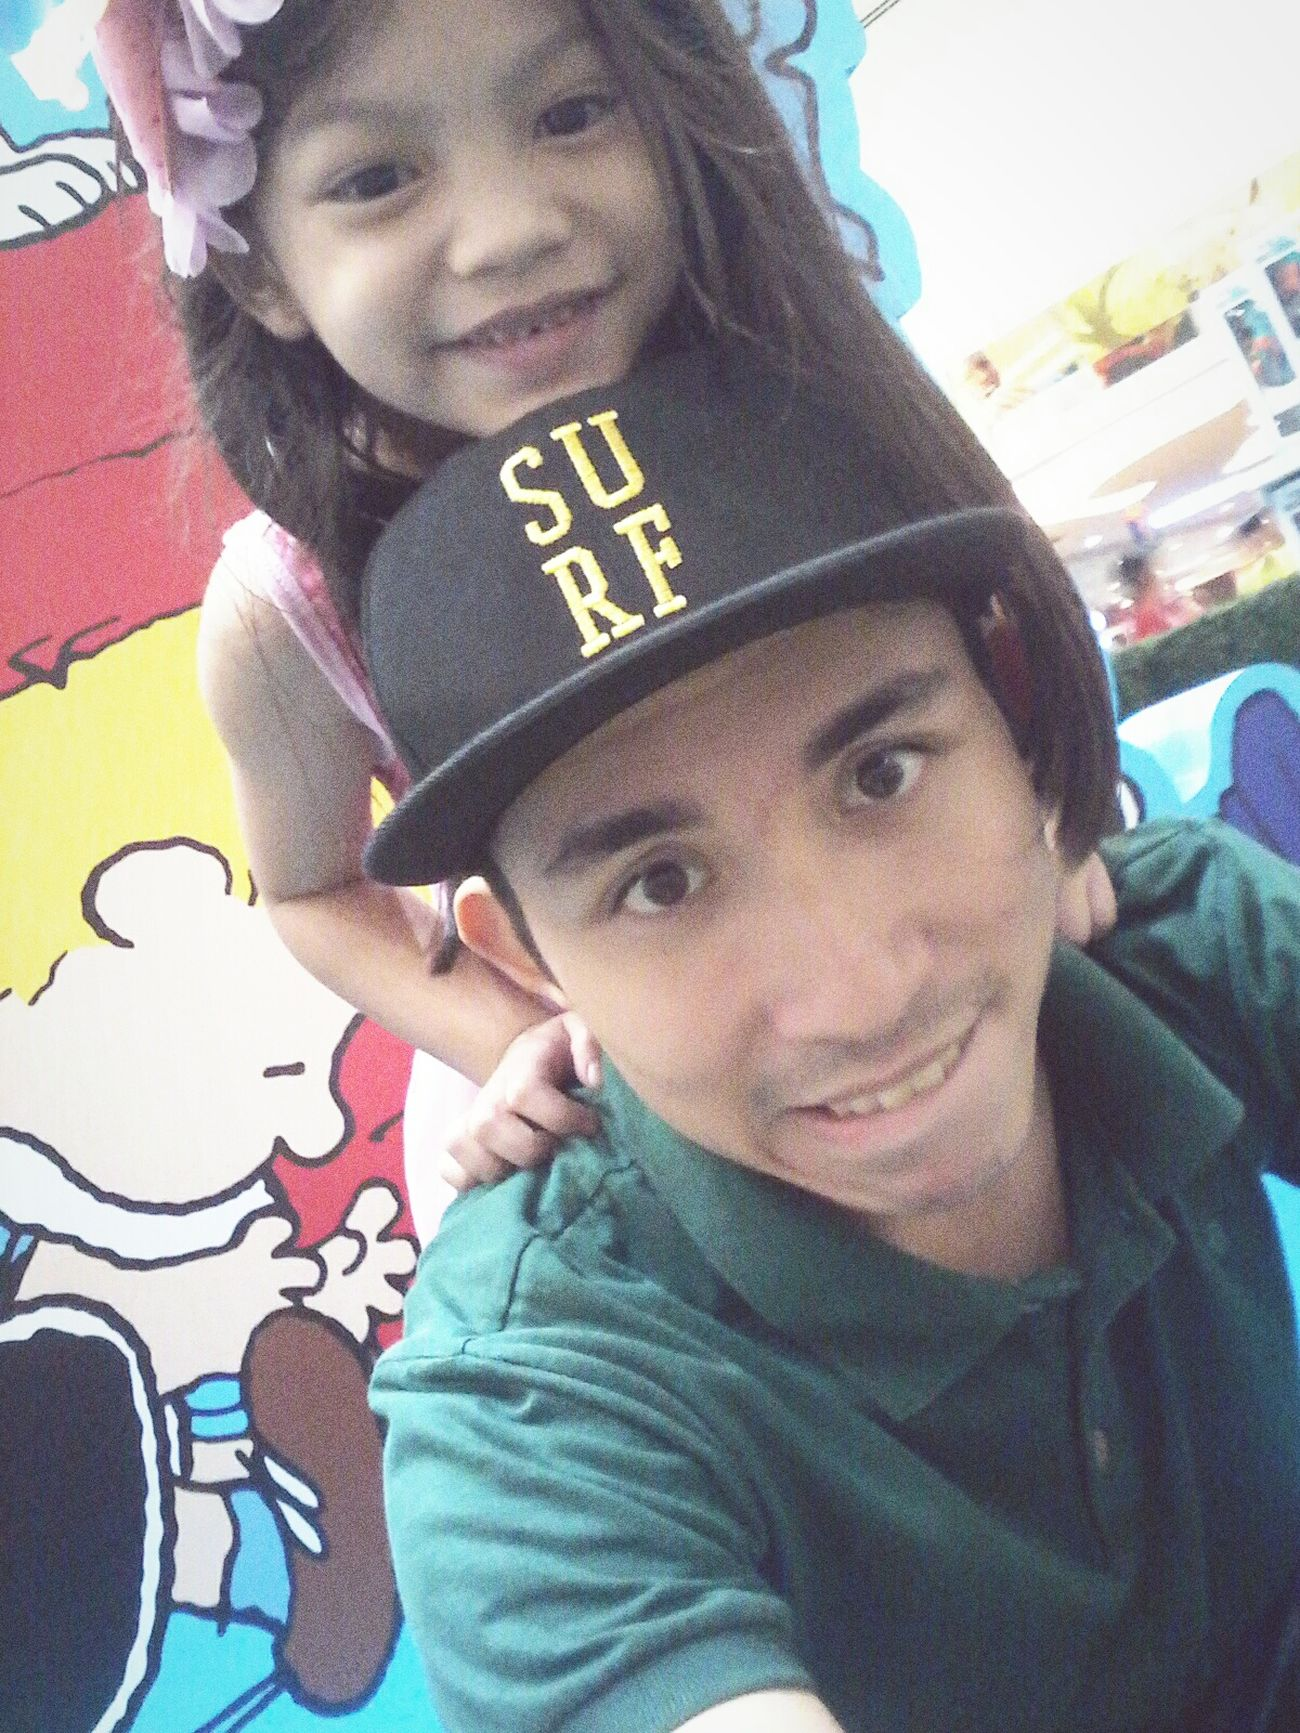 RePicture Friendship me and my baby little sister! Enjoy Life